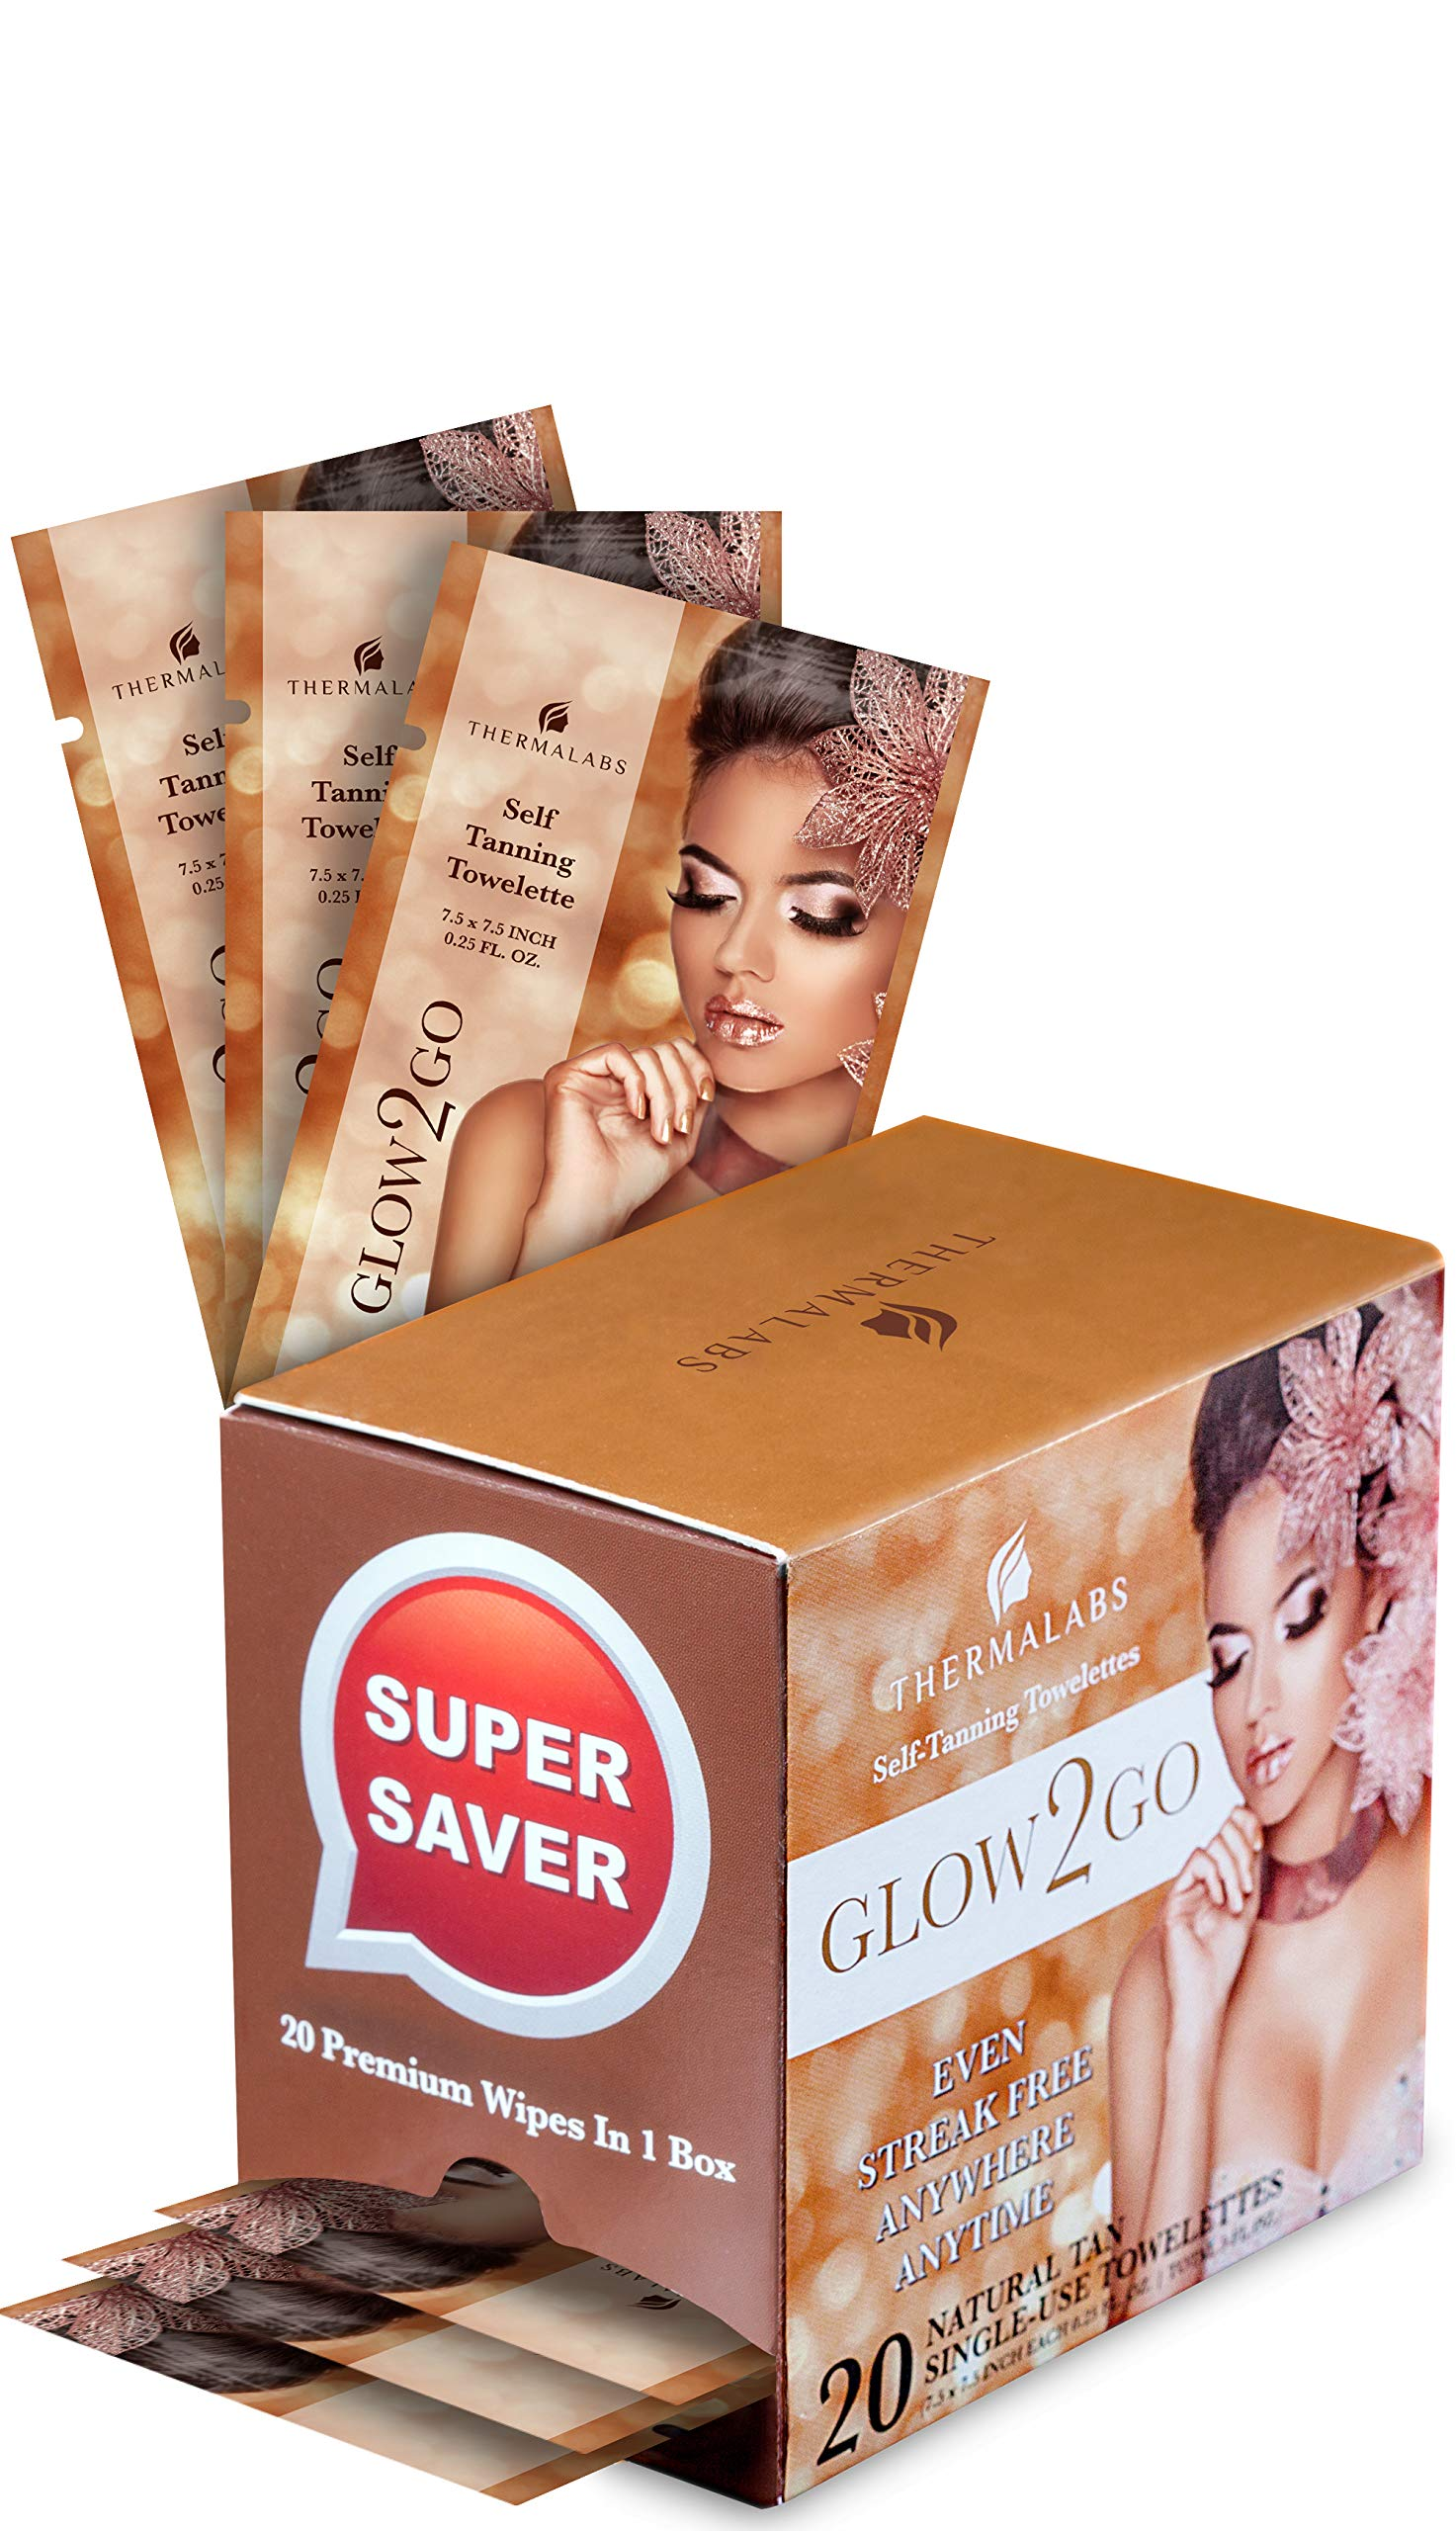 Tanning Towels Set: Double the Quantity (20 towelettes) for Half the Price! Sunless Tanner Towel Solution for Face and Half Body. Self Tanning Indoor Away from the Sun Gives Gold Glow for Men & Women